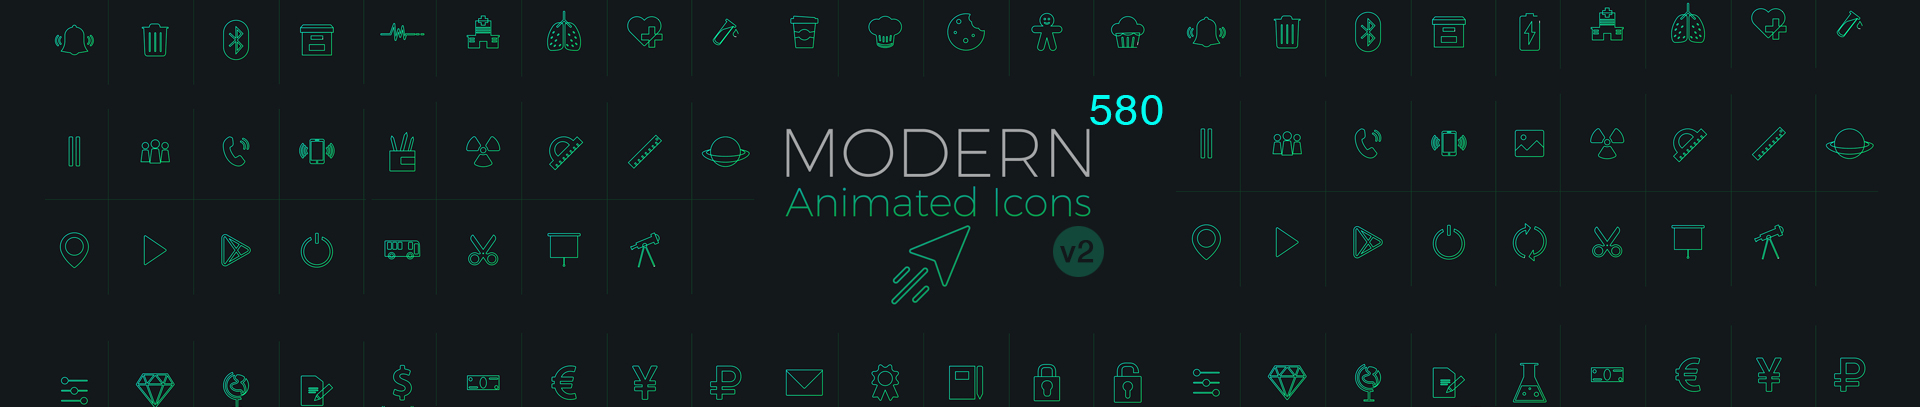 Modern-Animated-Icons-(slide)